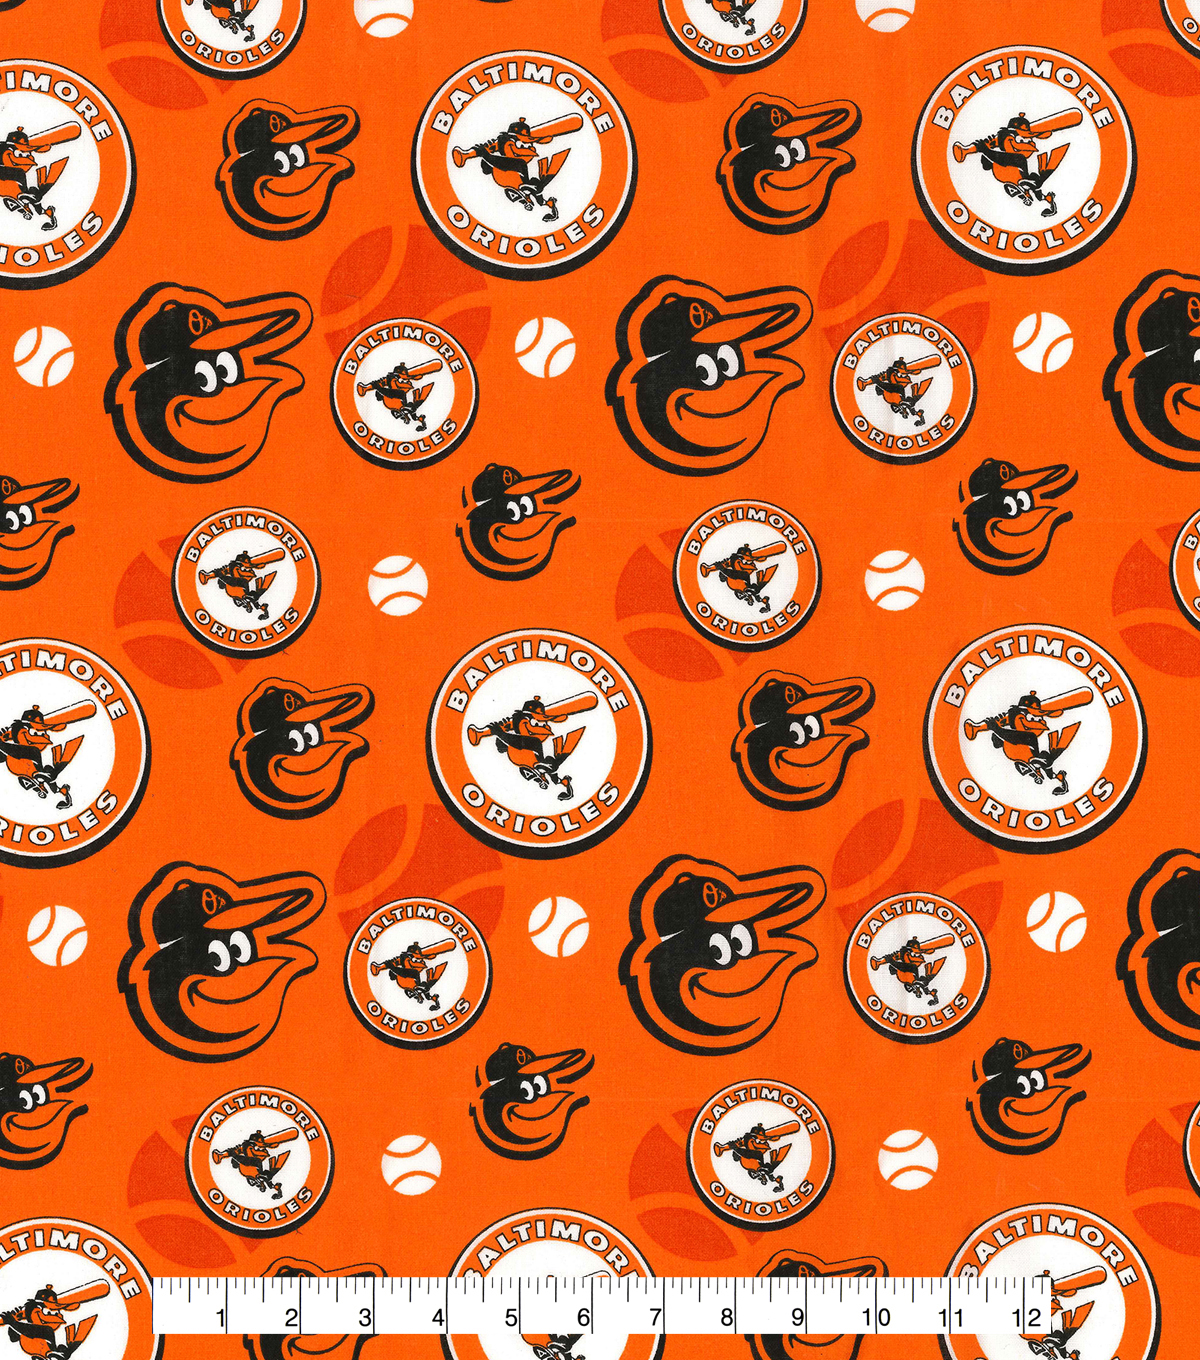 Cooperstown Baltimore Orioles Cotton Fabric 44\u0027\u0027